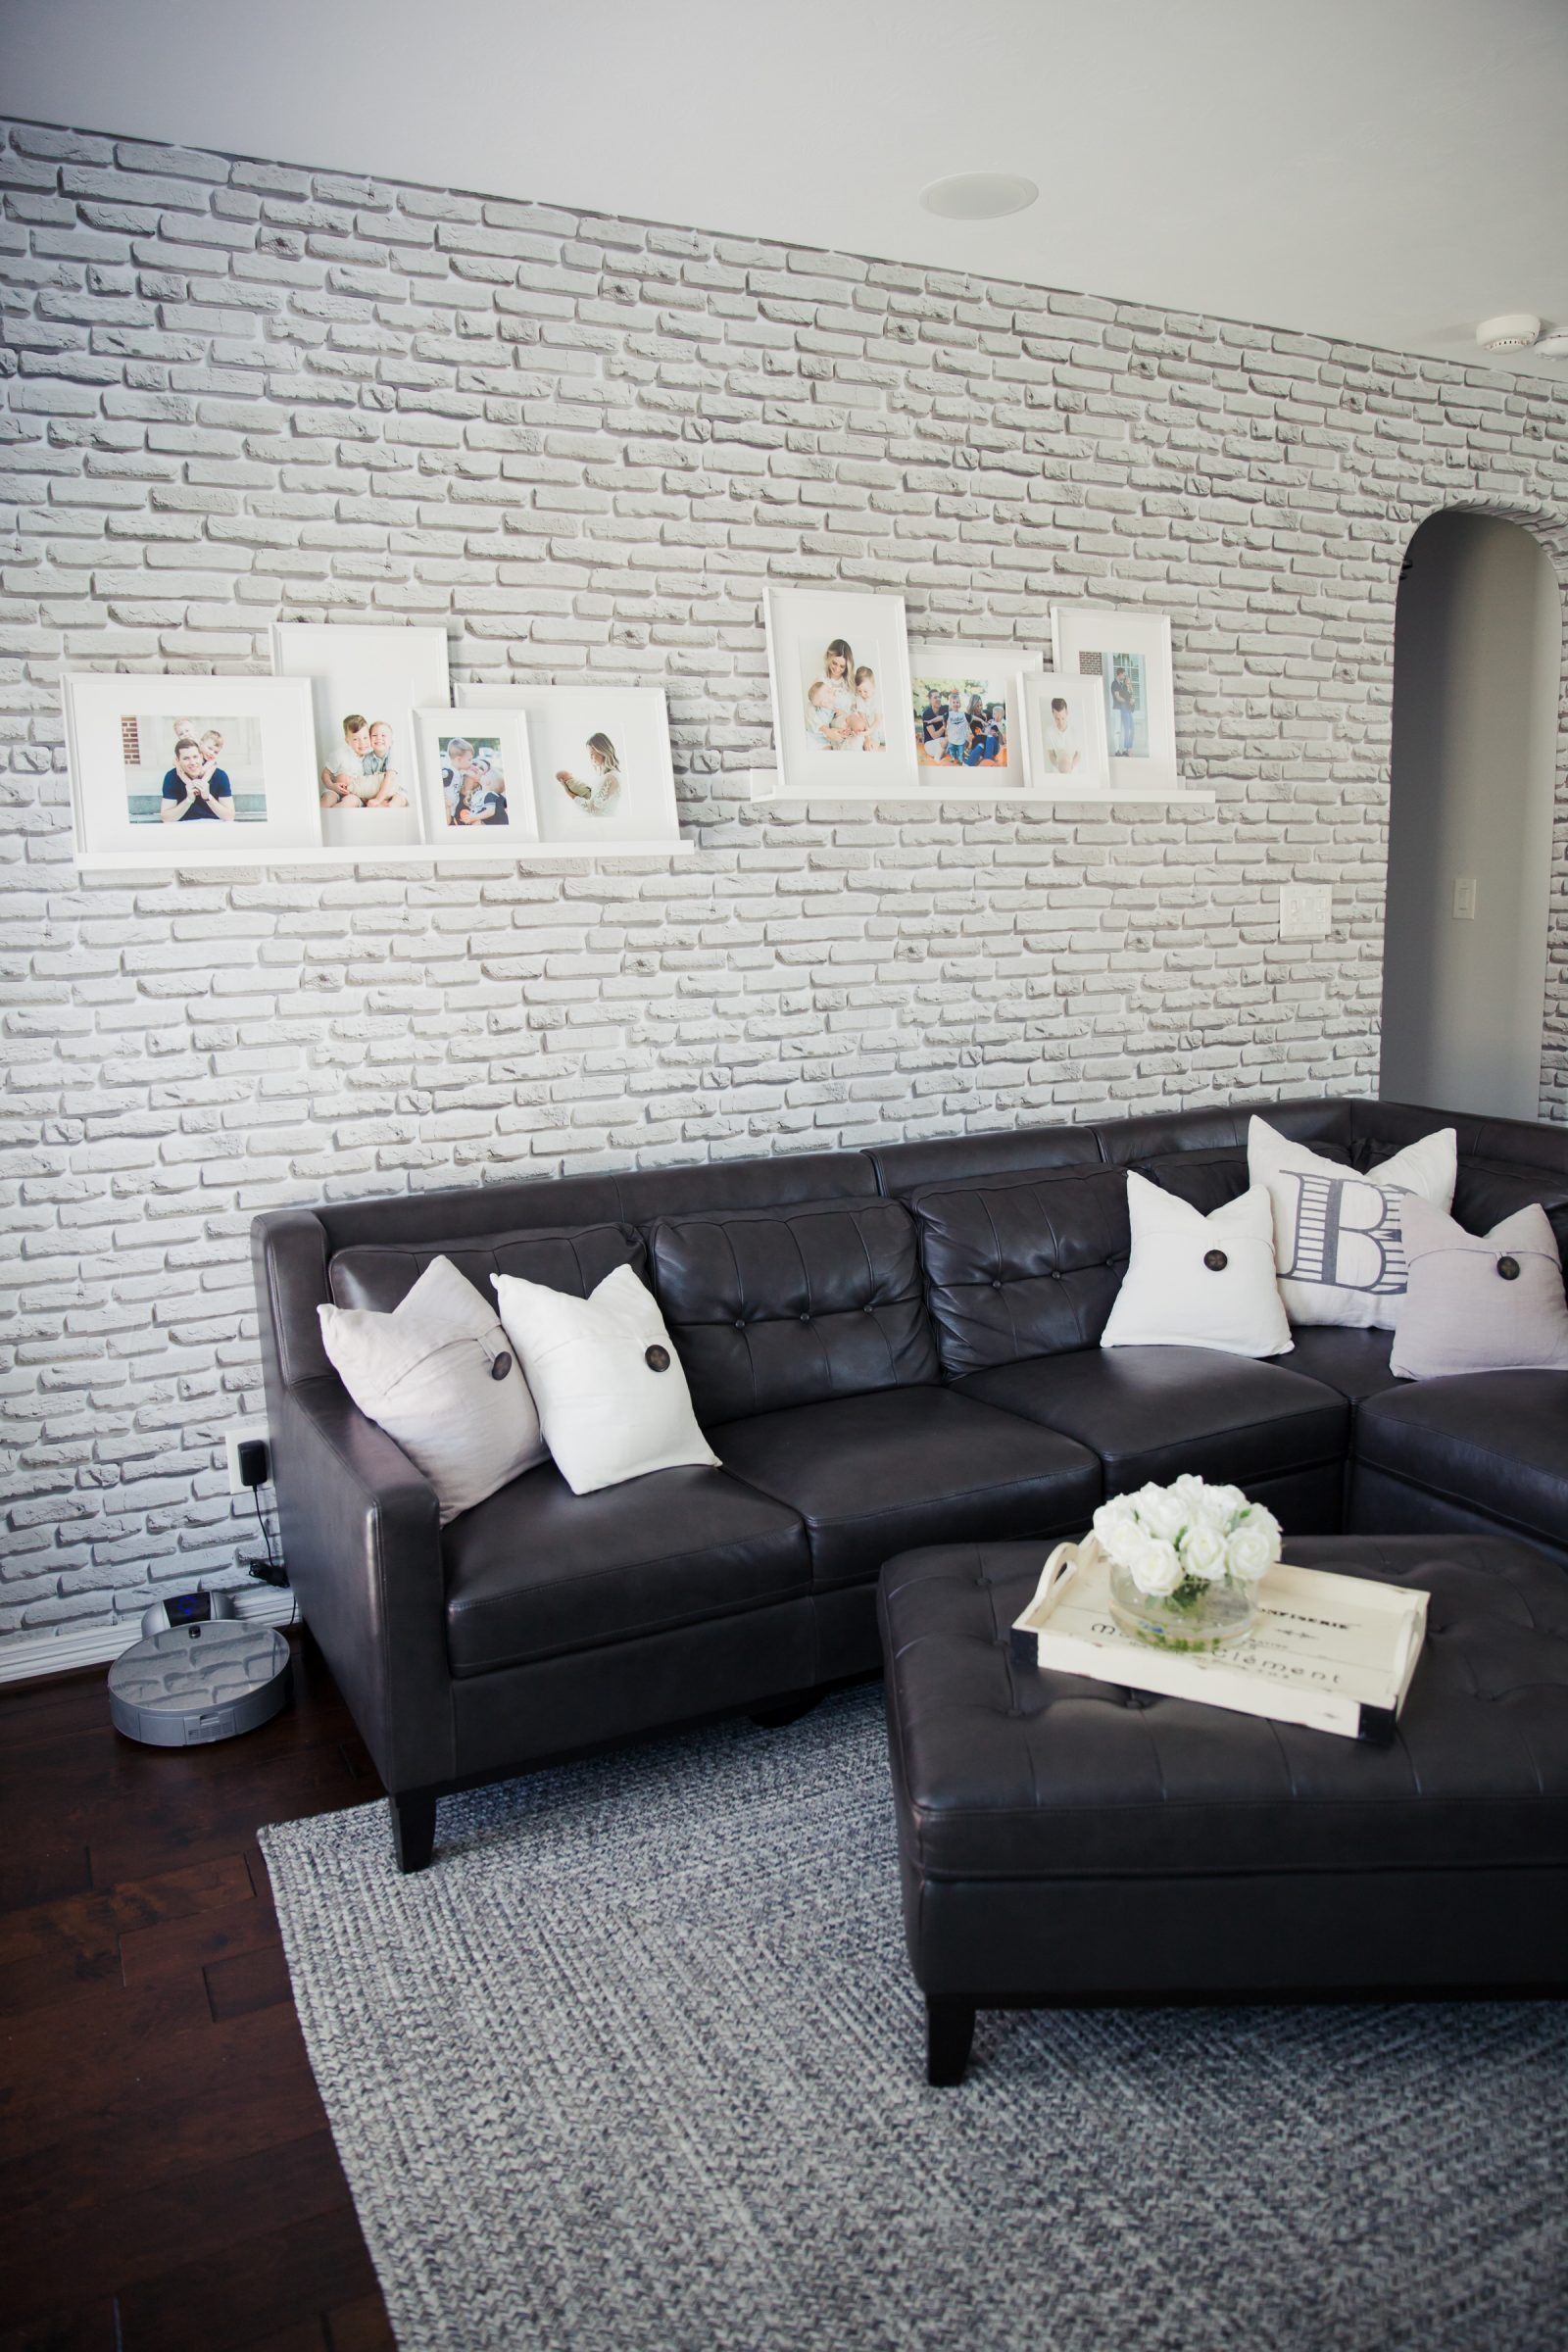 Grande Elly Brown Walls Need Love Coupon Code Walls Need Love Shower Curtain Walls Need Love Wallpaper Living Room Decor Decor Inspo Livingroom Inspo Walls Need Love Living Room Reveal Uptown houzz-02 Walls Need Love